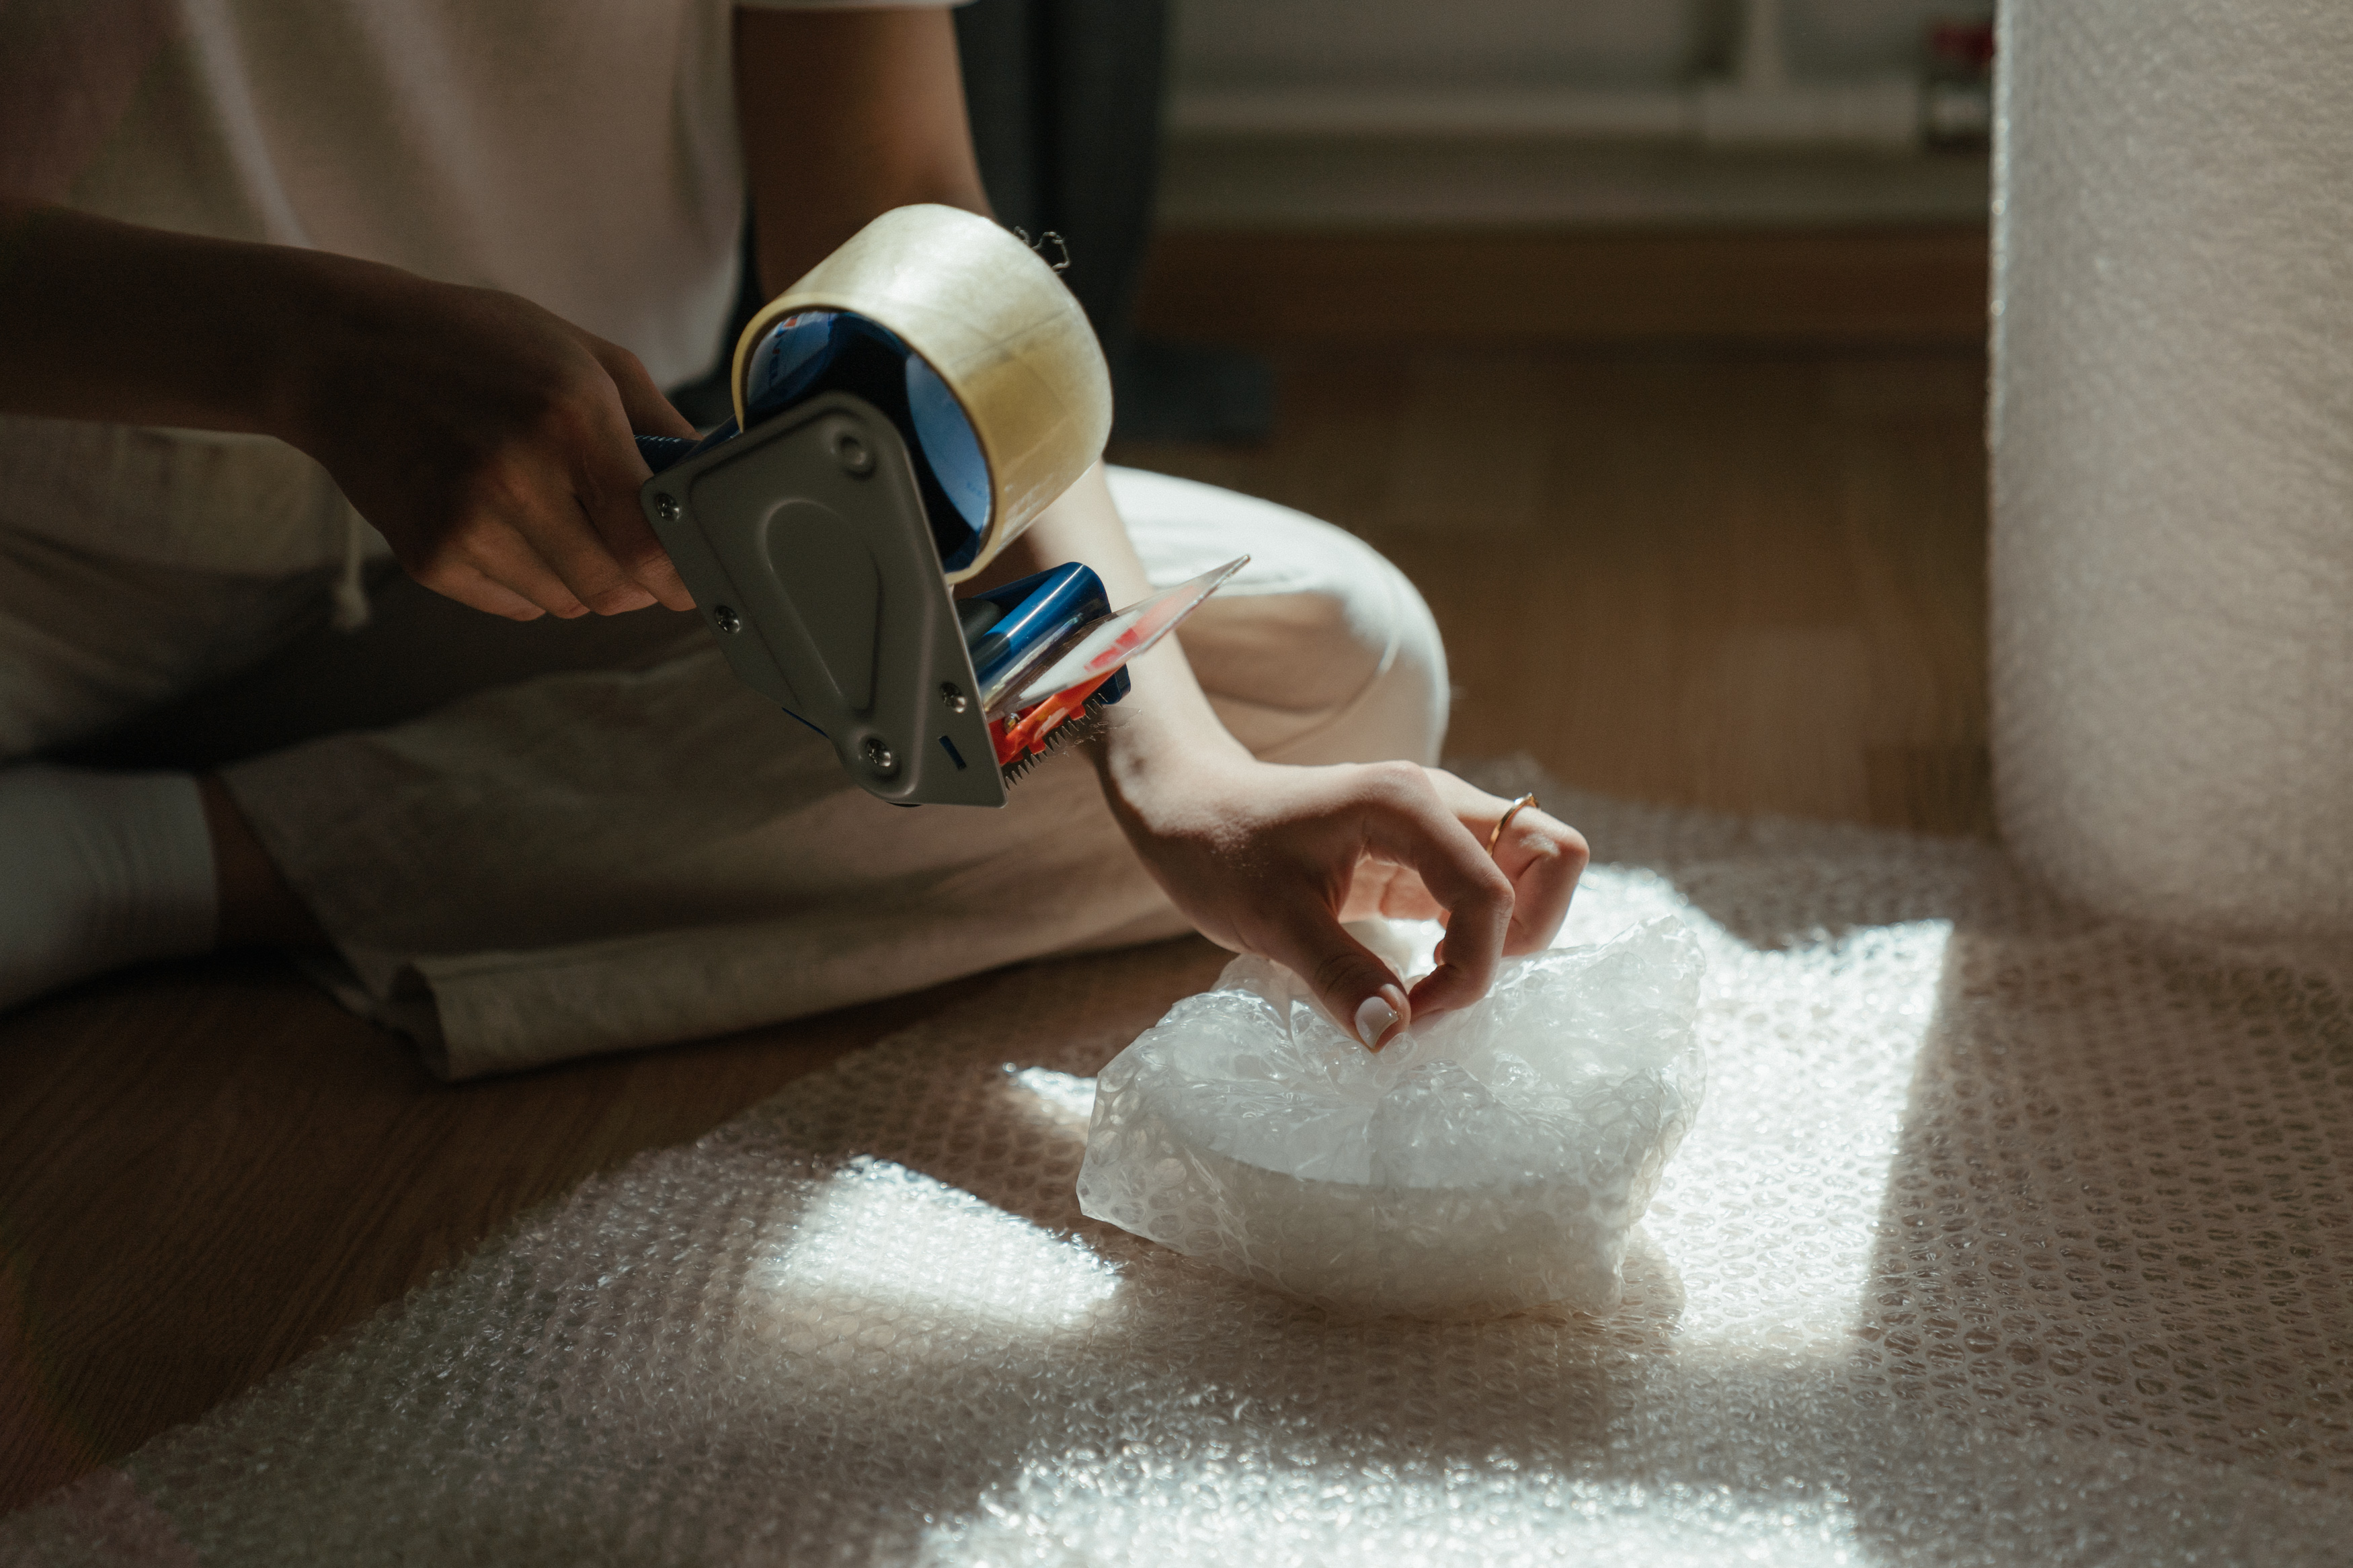 A woman wrapping a bowl in bubble plastic